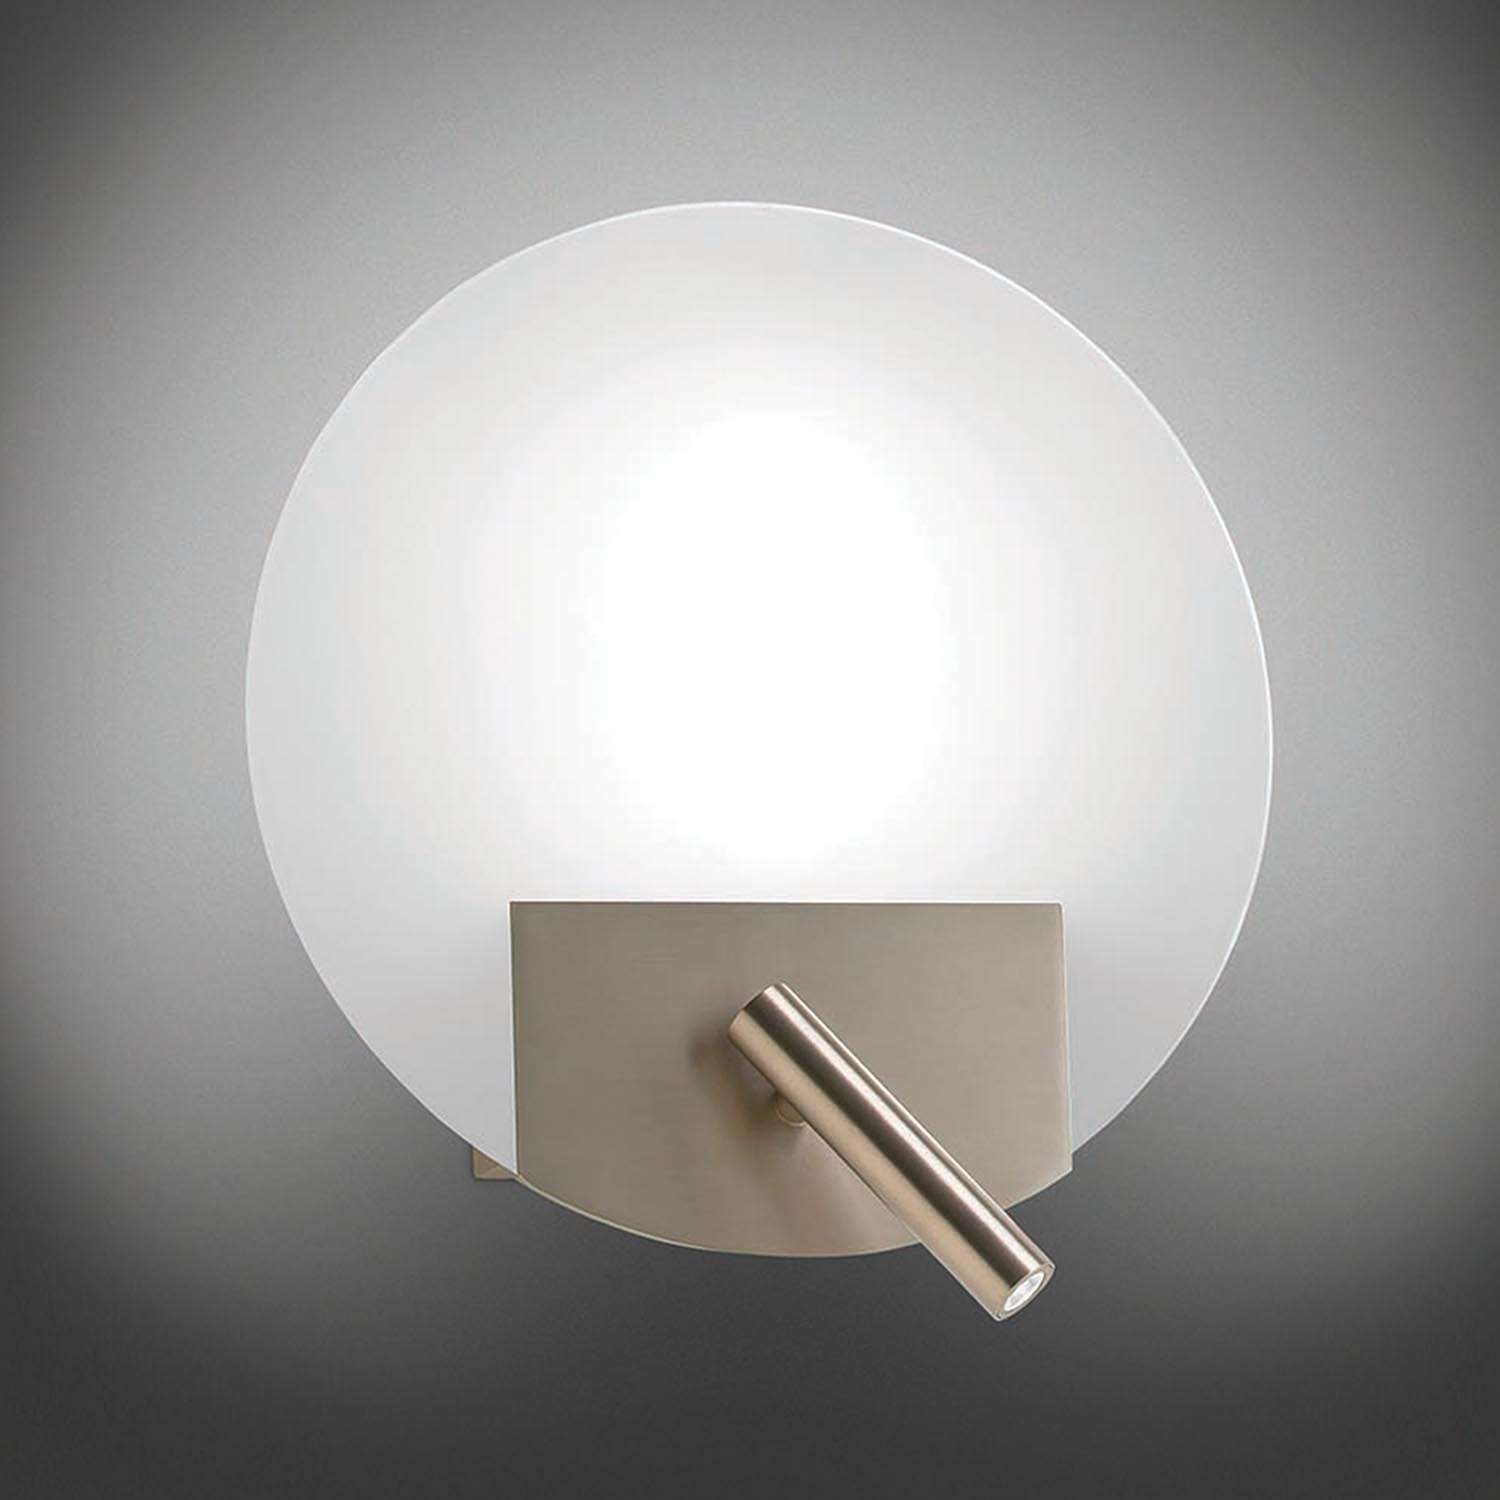 Image of: Round Flat Wall Sconce